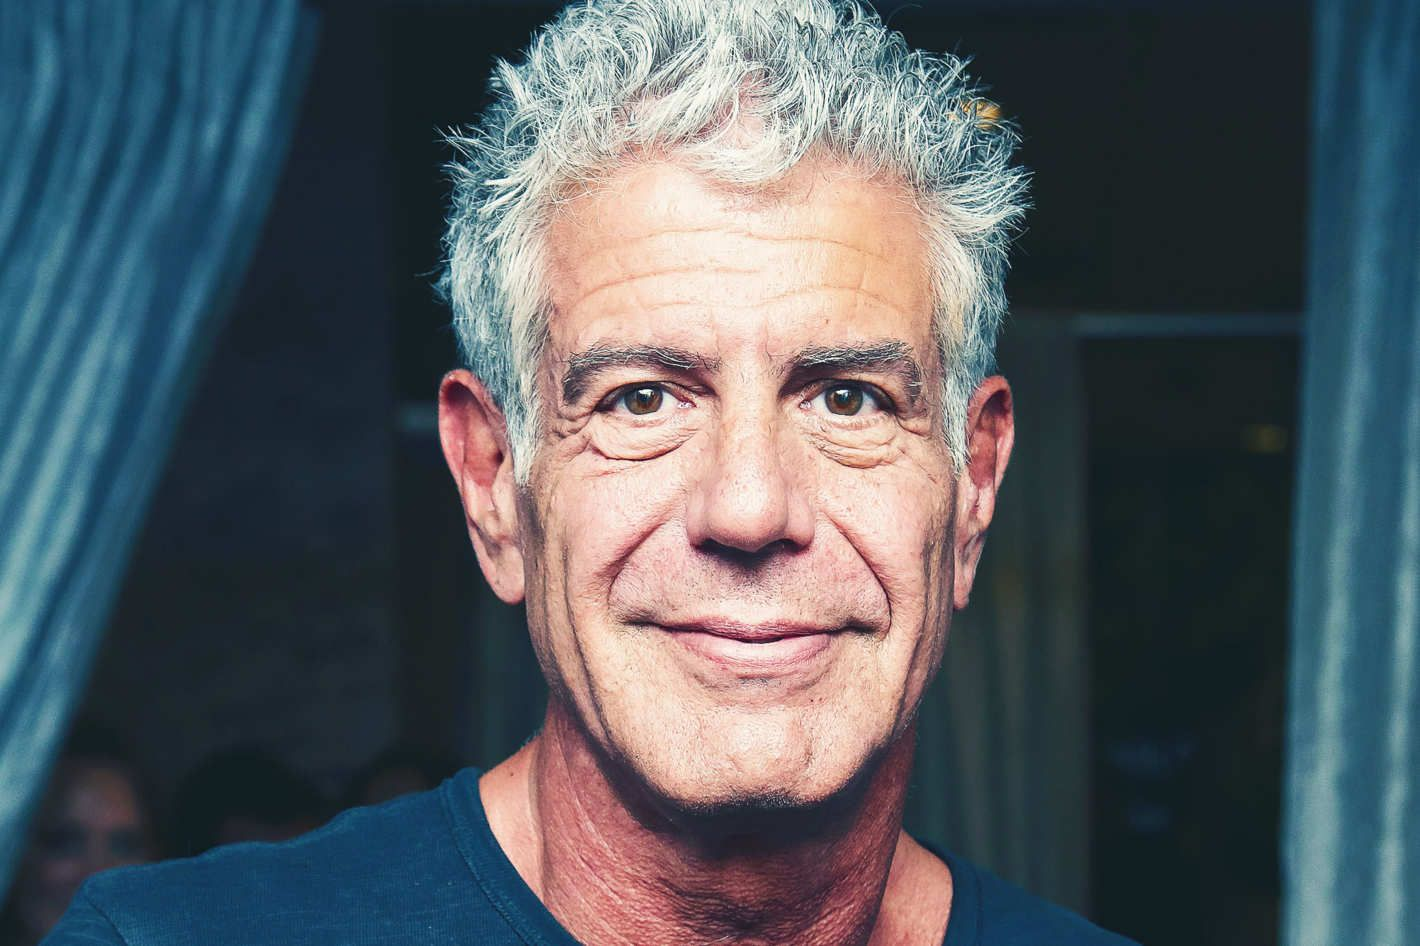 Anthony bourdain spoke out where other men wouldnt